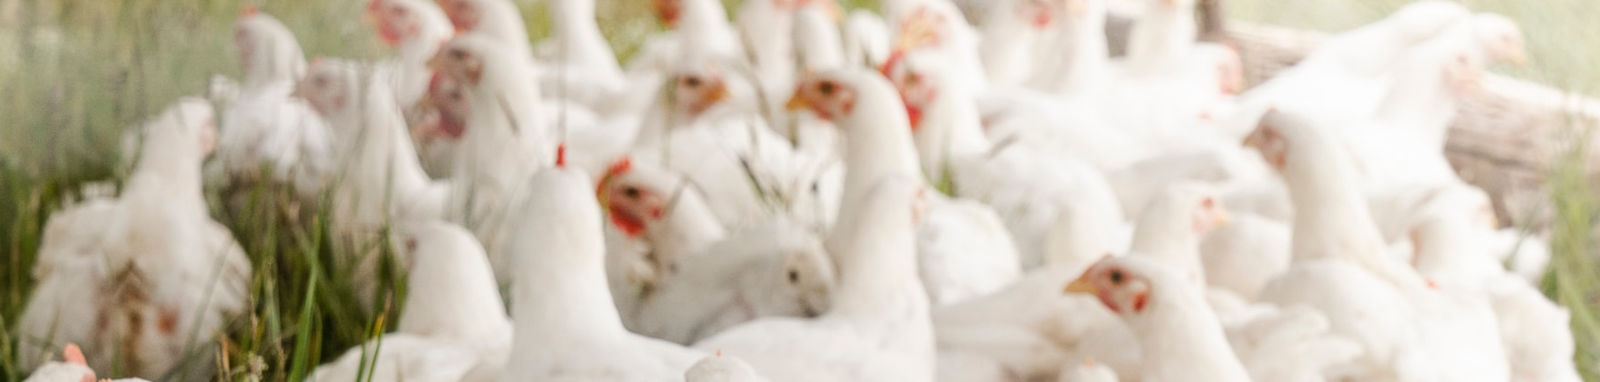 group of white chickens outside